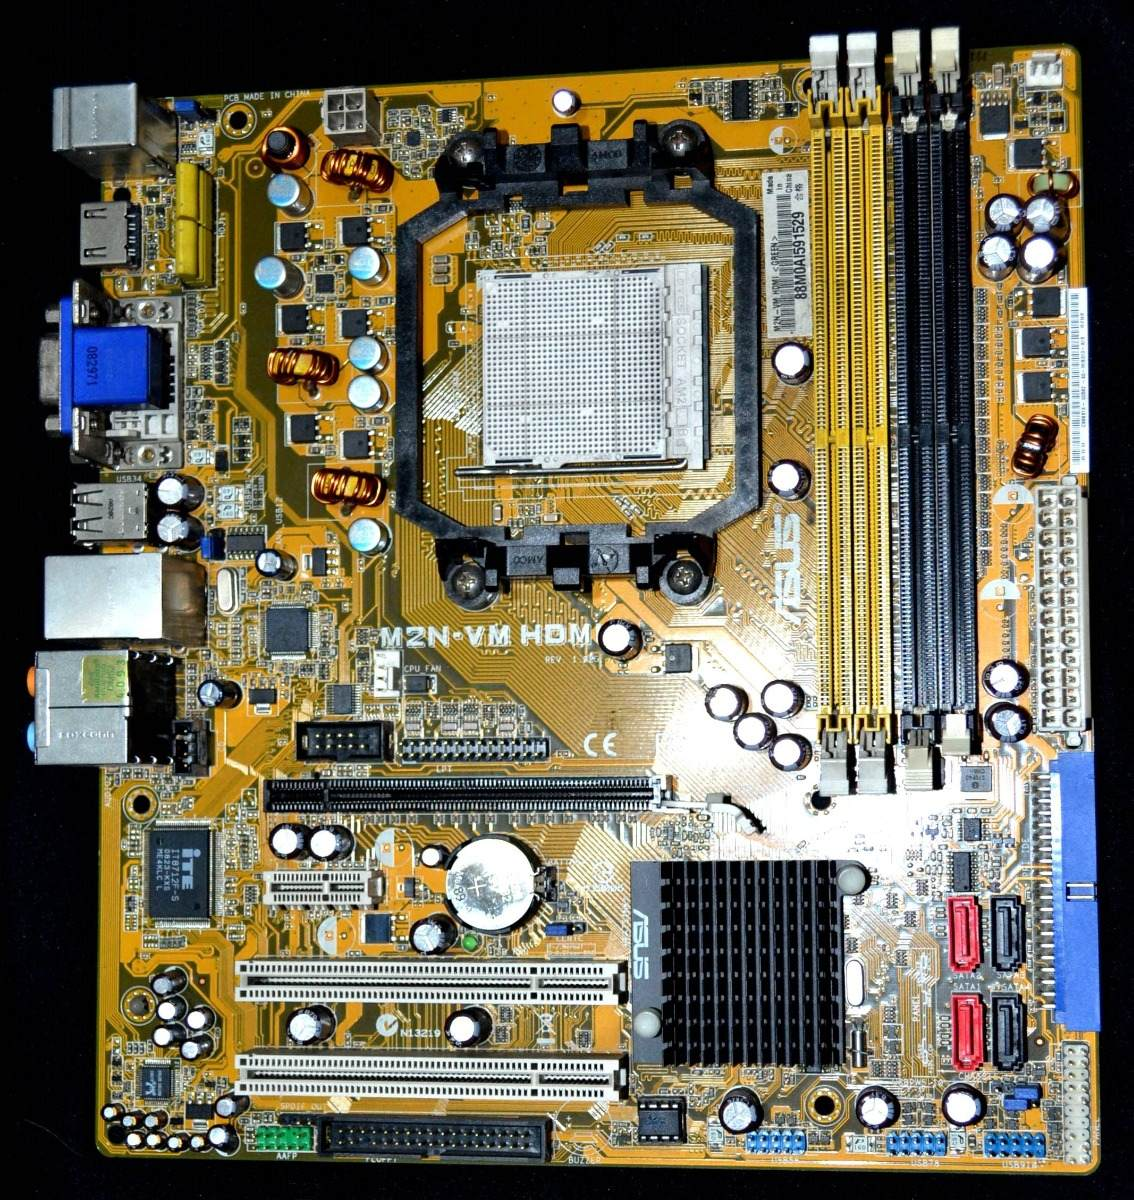 ASUS M2N-VM HDMI MOTHERBOARD DRIVER FOR WINDOWS 7